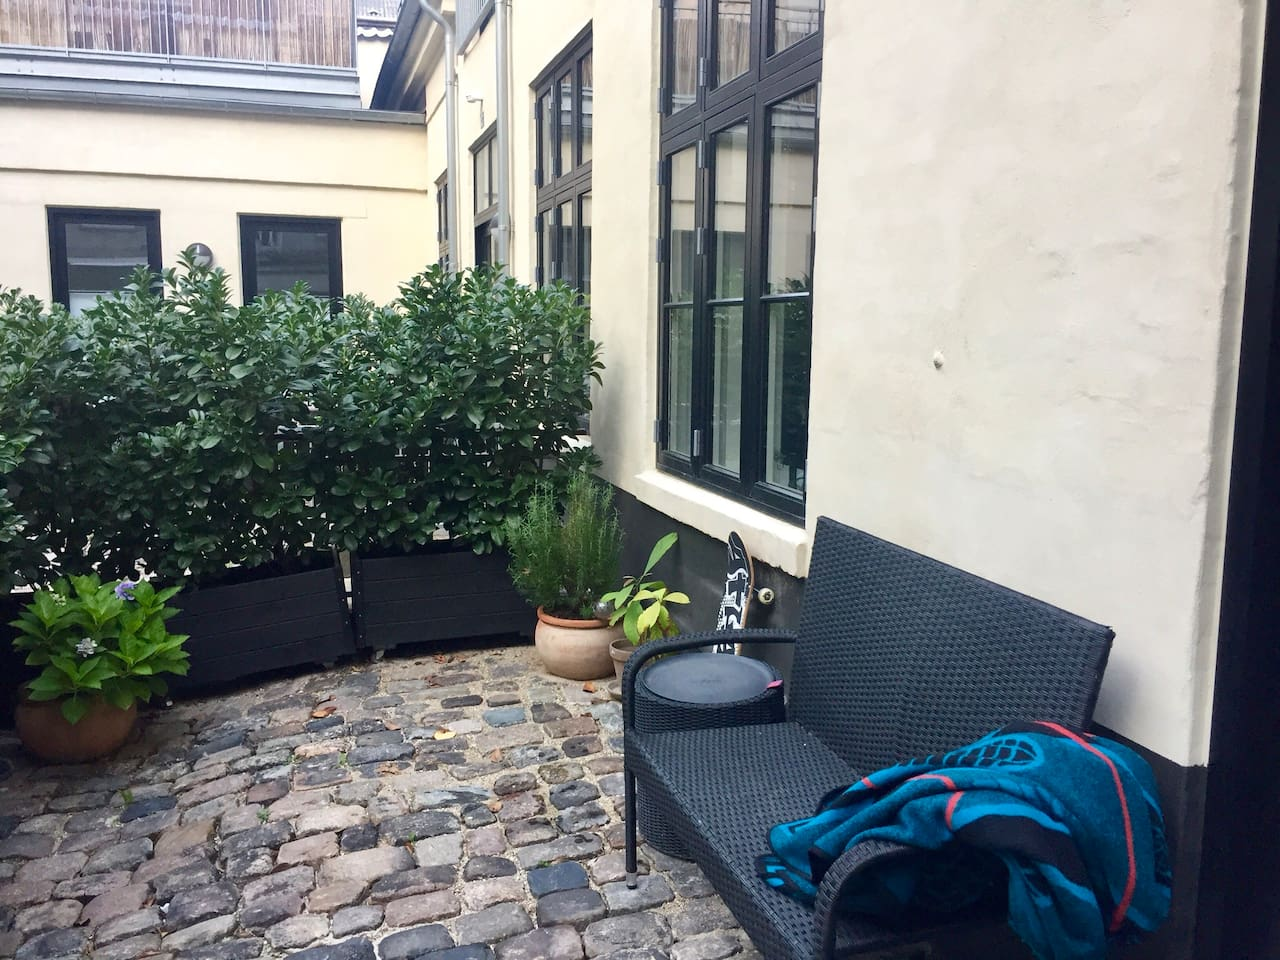 Drawn back from busy Sankt Hans Torv the apartment is located at the ground floor of a small town house  with a quiet inner yard. The picture shows the private outdoor area in the front of the apartment.